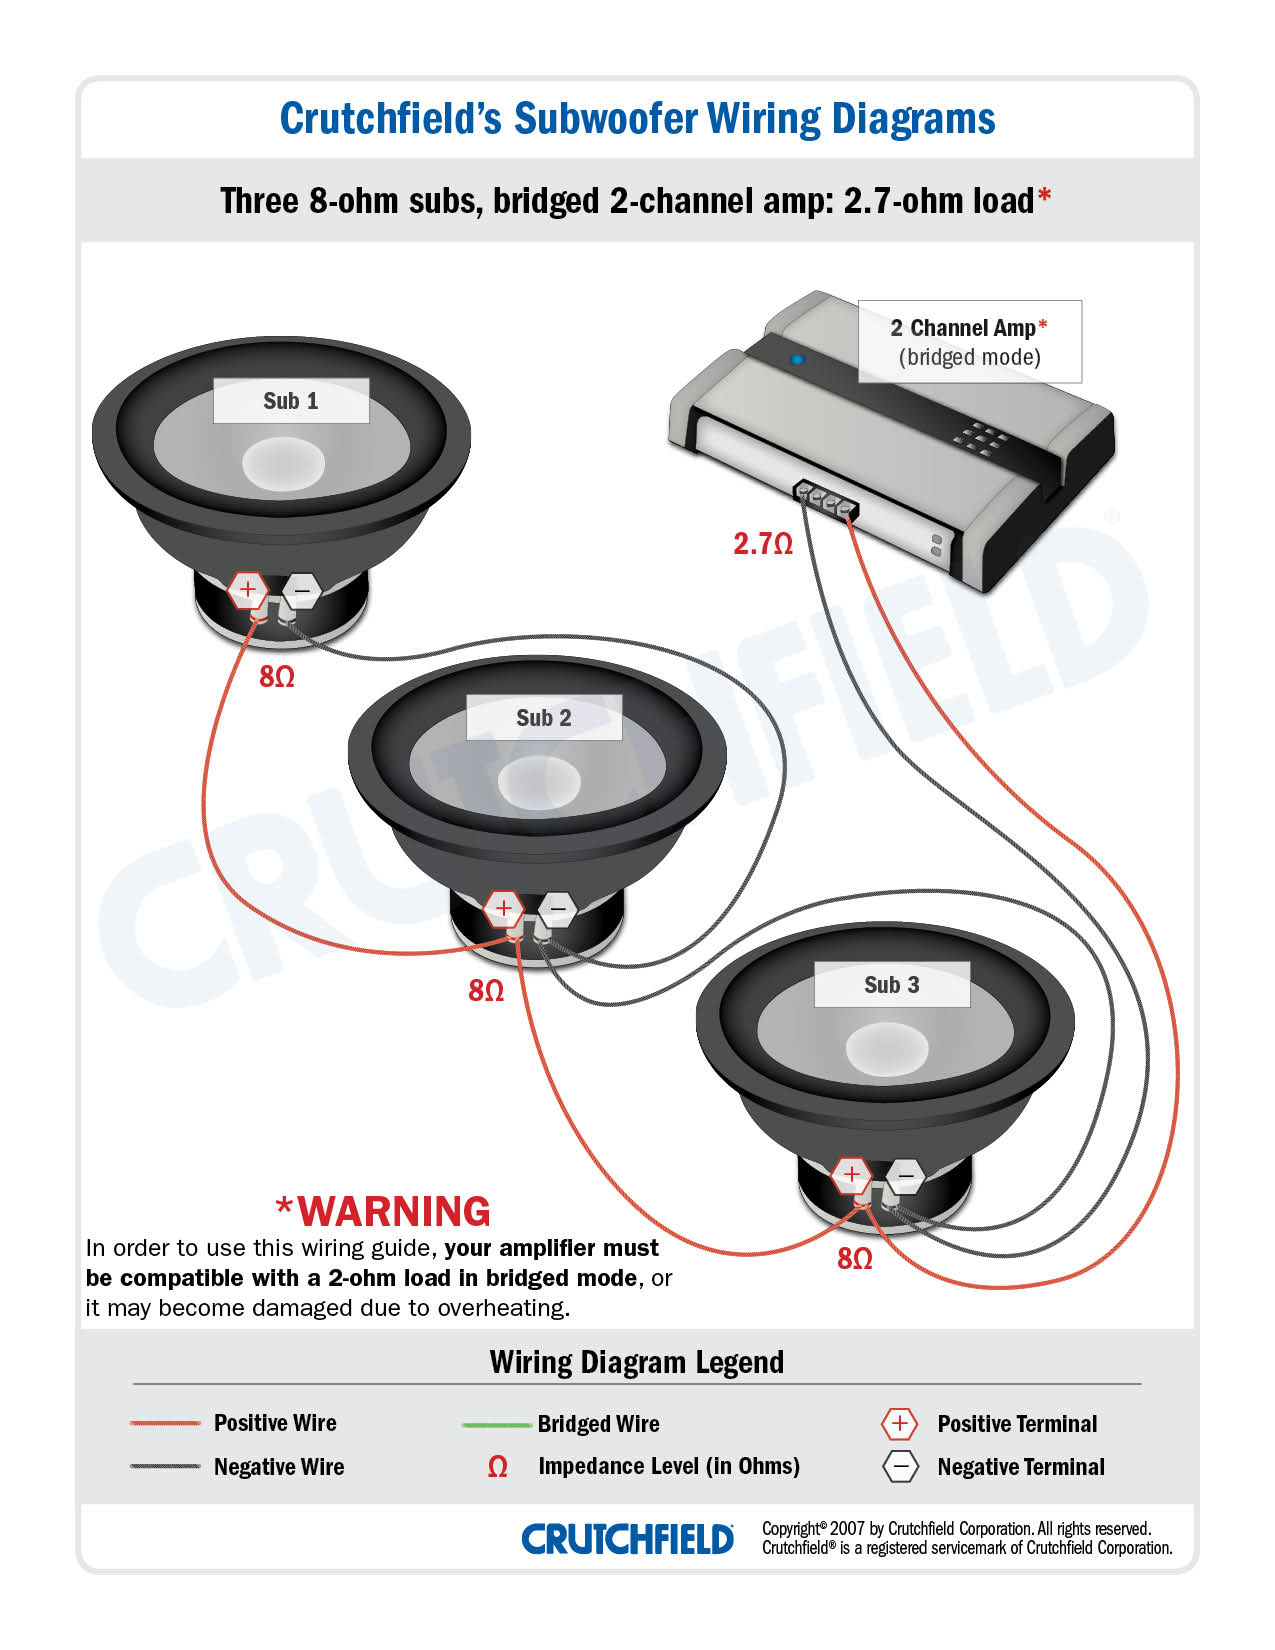 3 SVC 8 ohm 2 ch low imp 8 ohm wiring diagram subwoofer ohm diagram \u2022 free wiring diagrams Wiring 8 -Ohm Speakers at bayanpartner.co